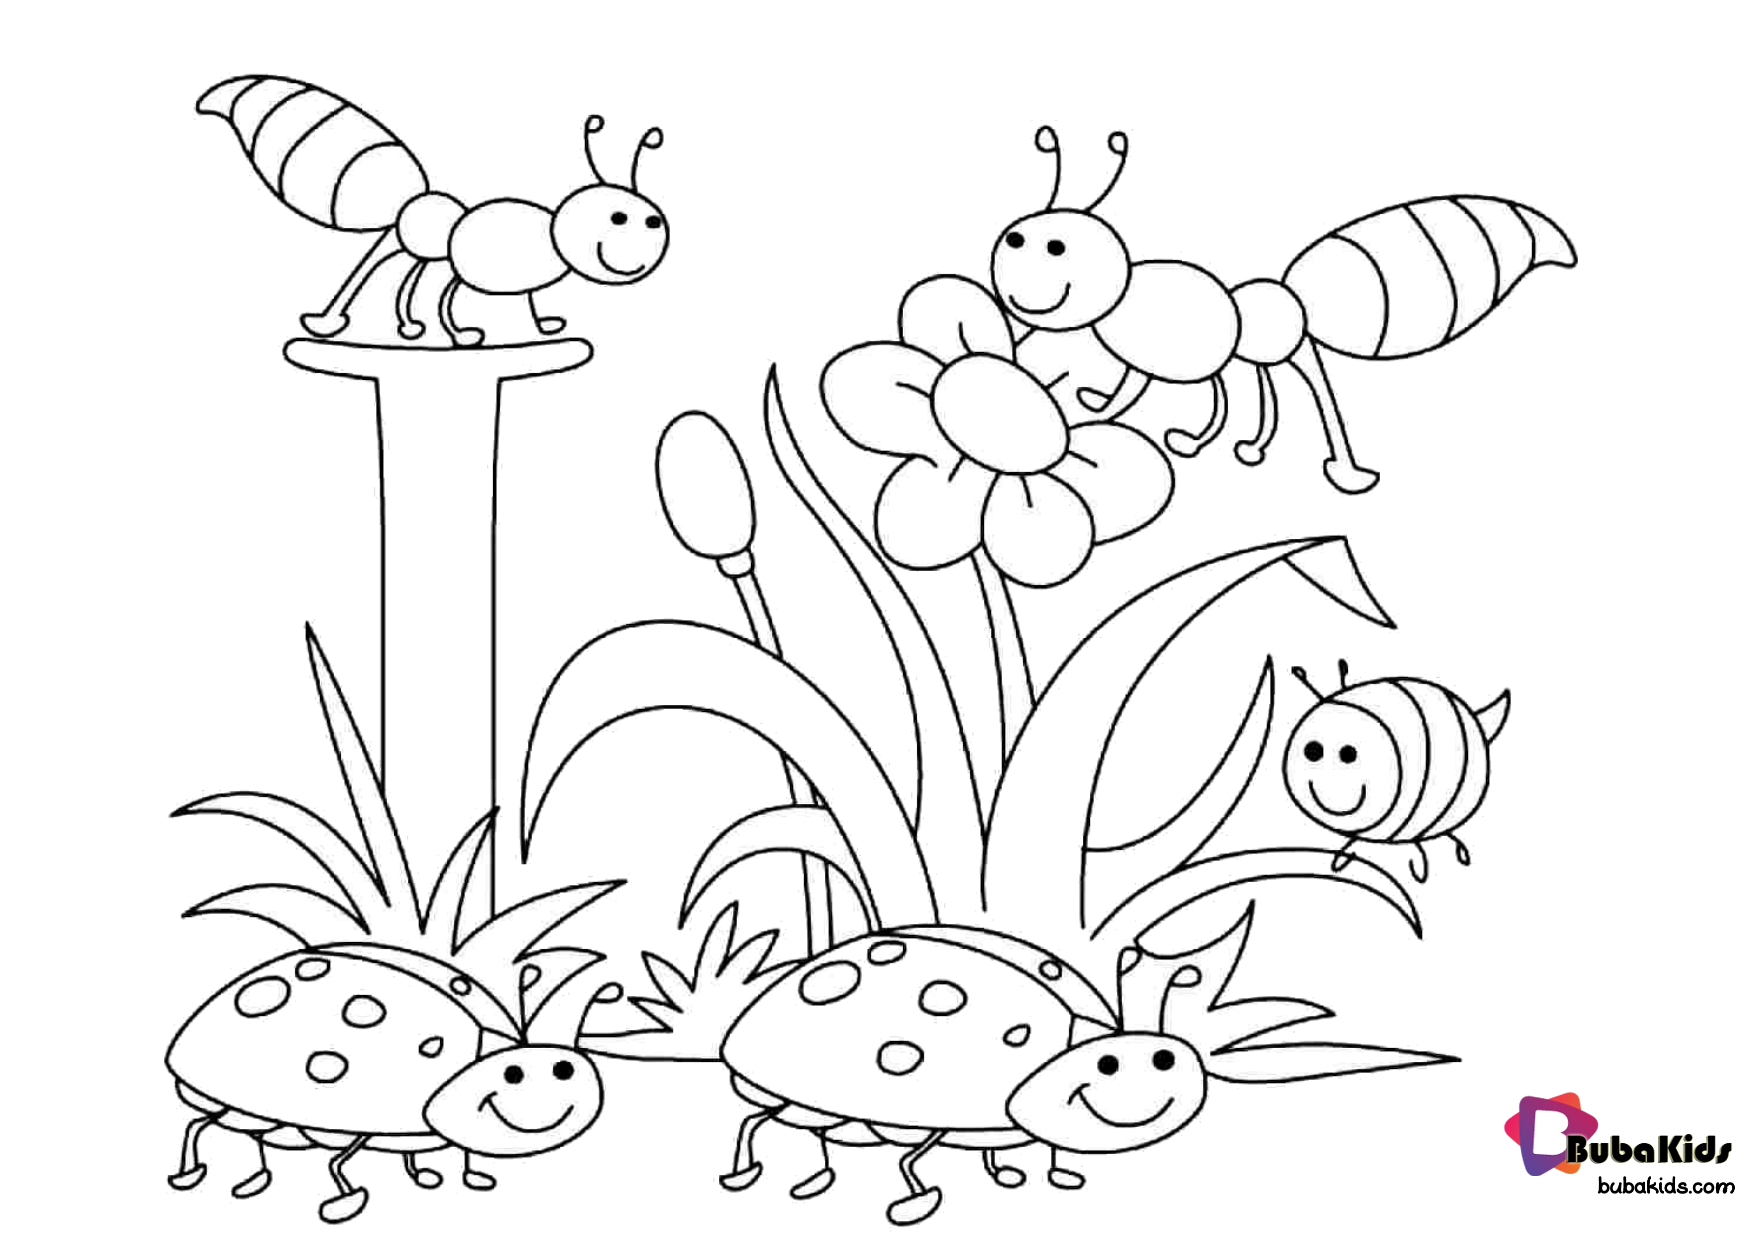 coloring page for preschool